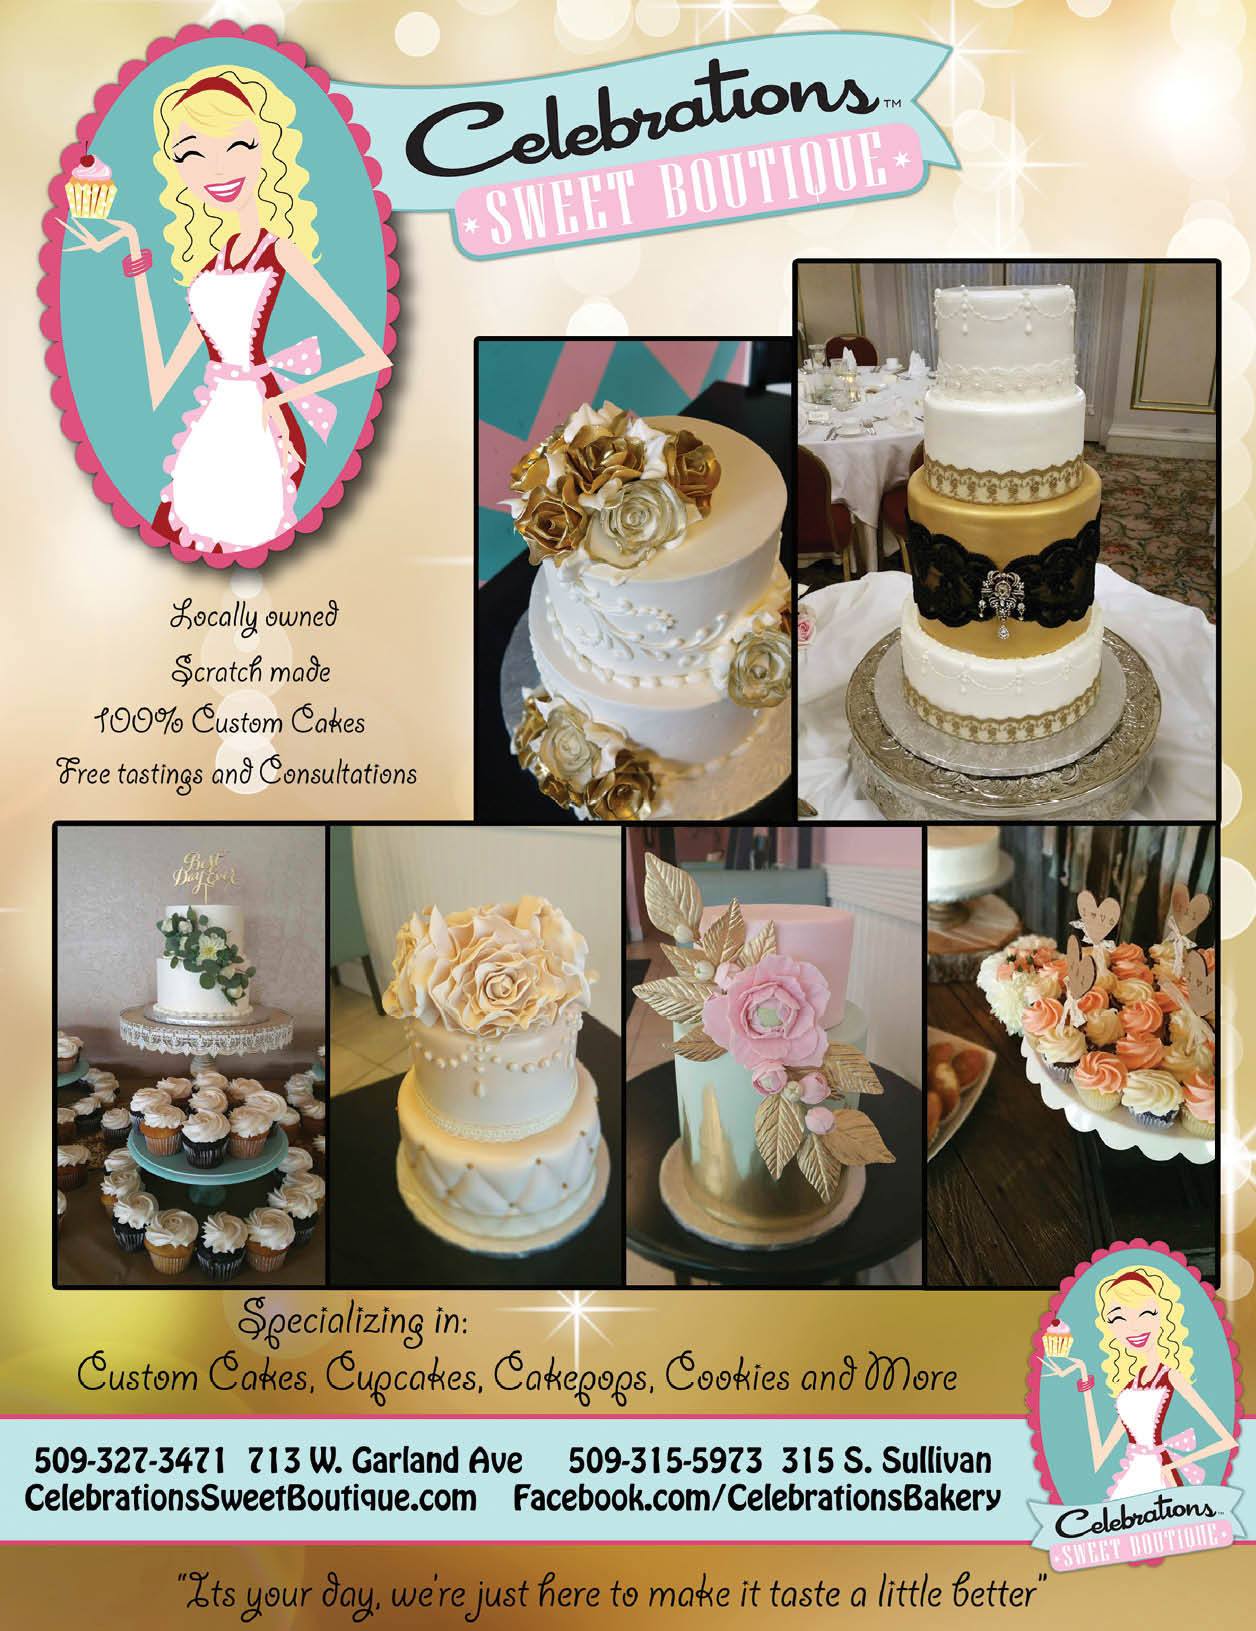 2017 Celebrationx Sweet Boutique WRG